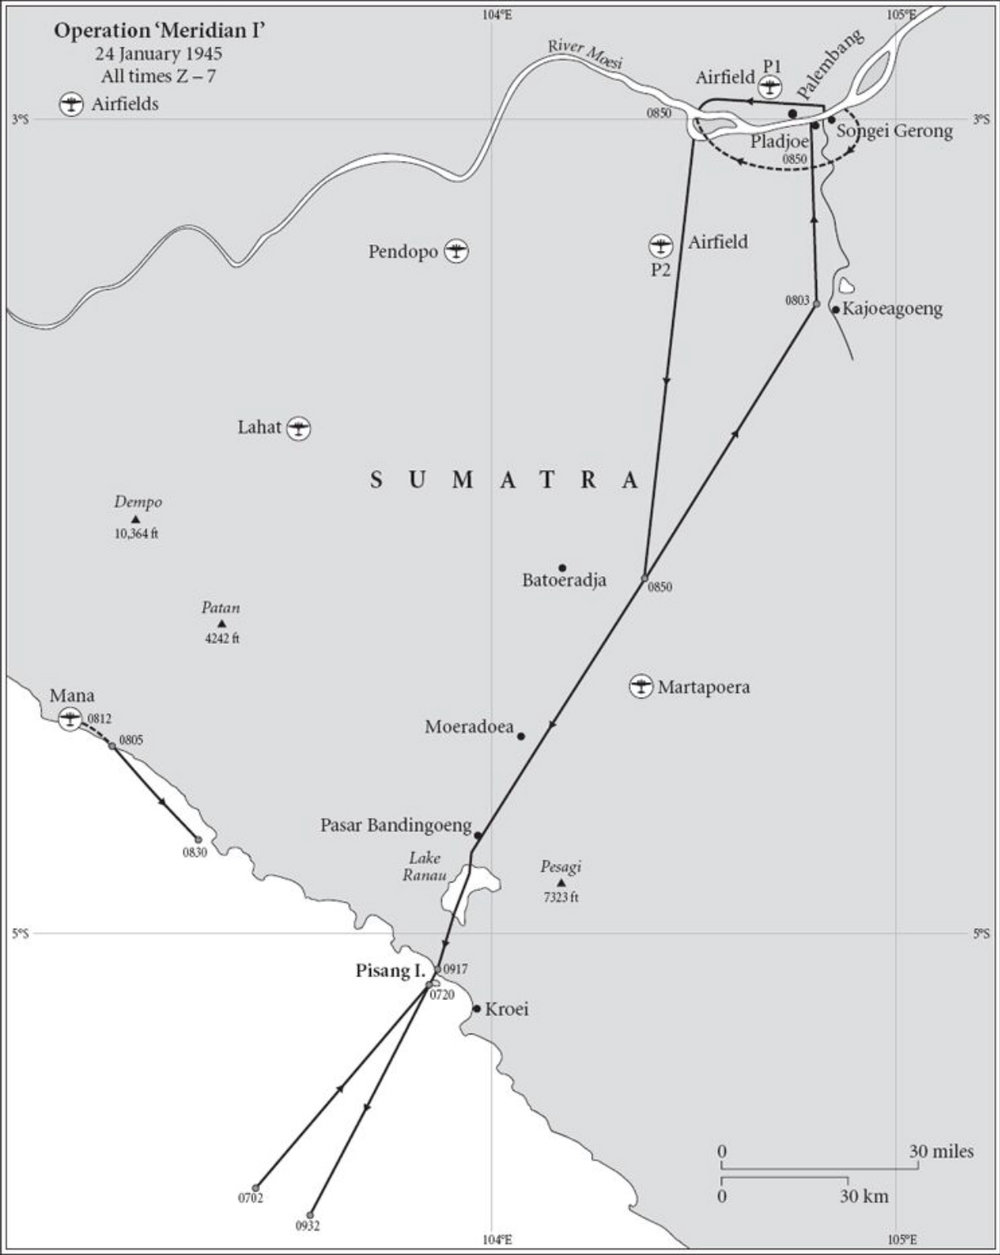 This map shows the flight paths of the strike forces of Meridian I & II for the attacks on the Pladjoe and Songei Gerong (dotted lines) refineries immediately south of Palembang city. Of particular note are the location of the Japanese airfields, and the relative position of the targets on the opposite bank of the tributary to the River Mosei.